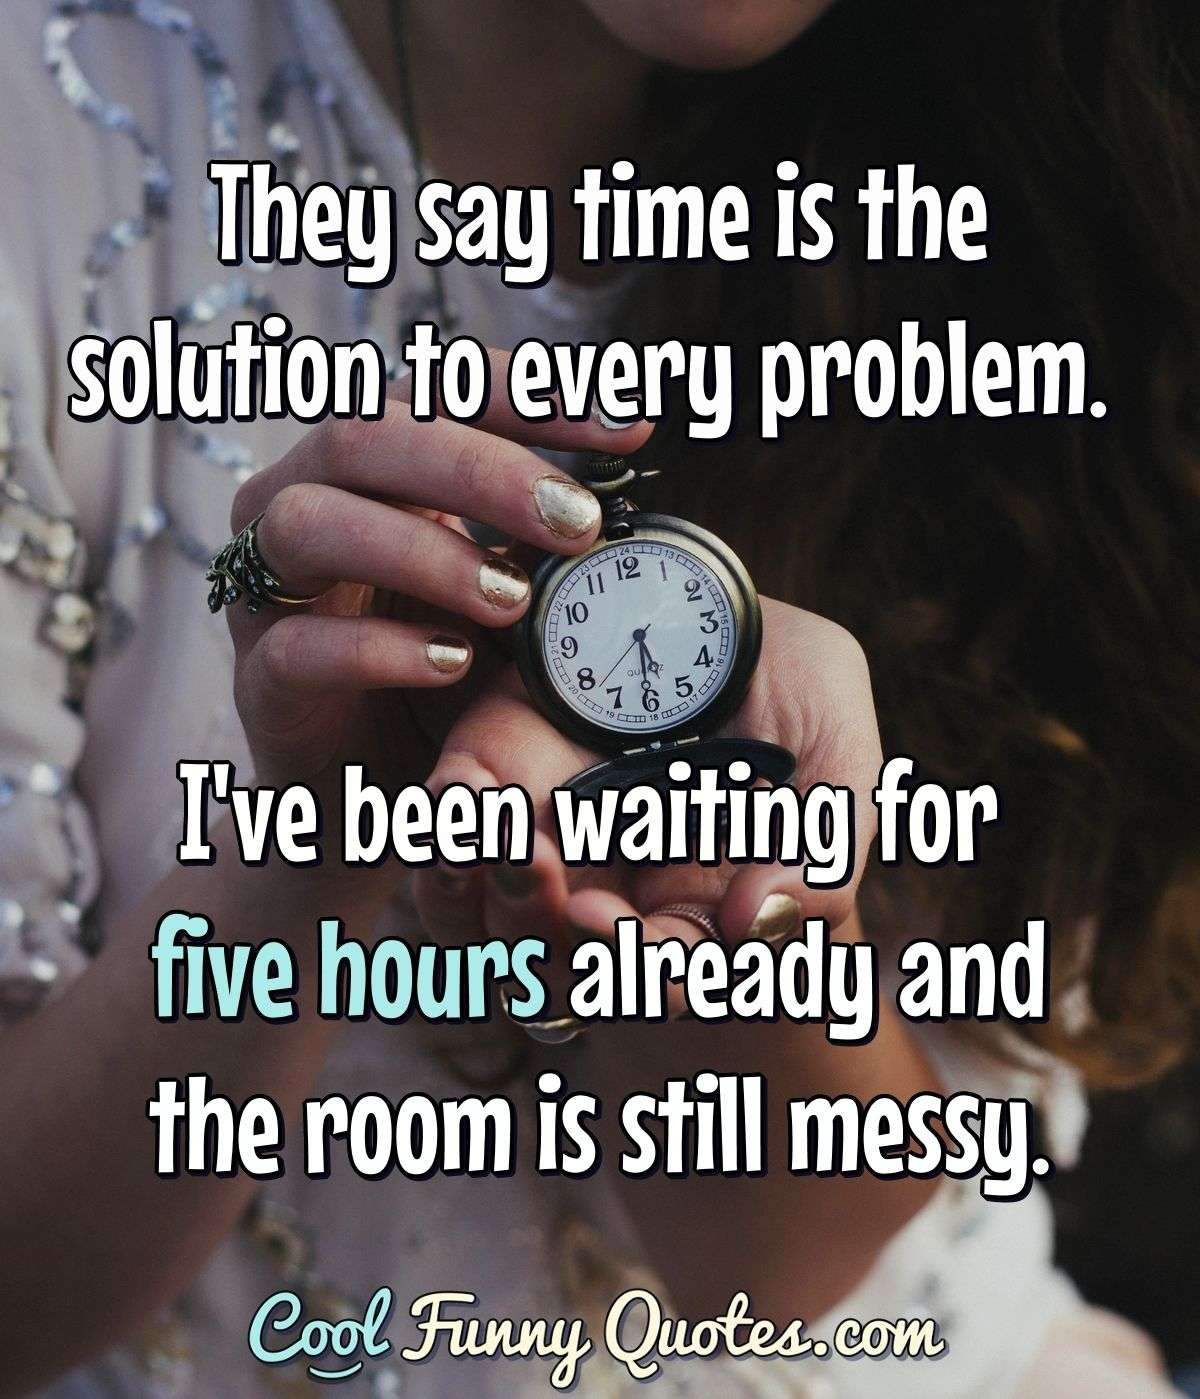 They say time is the solution to every problem. I've been waiting for five hours already and the room is still messy. - Anonymous